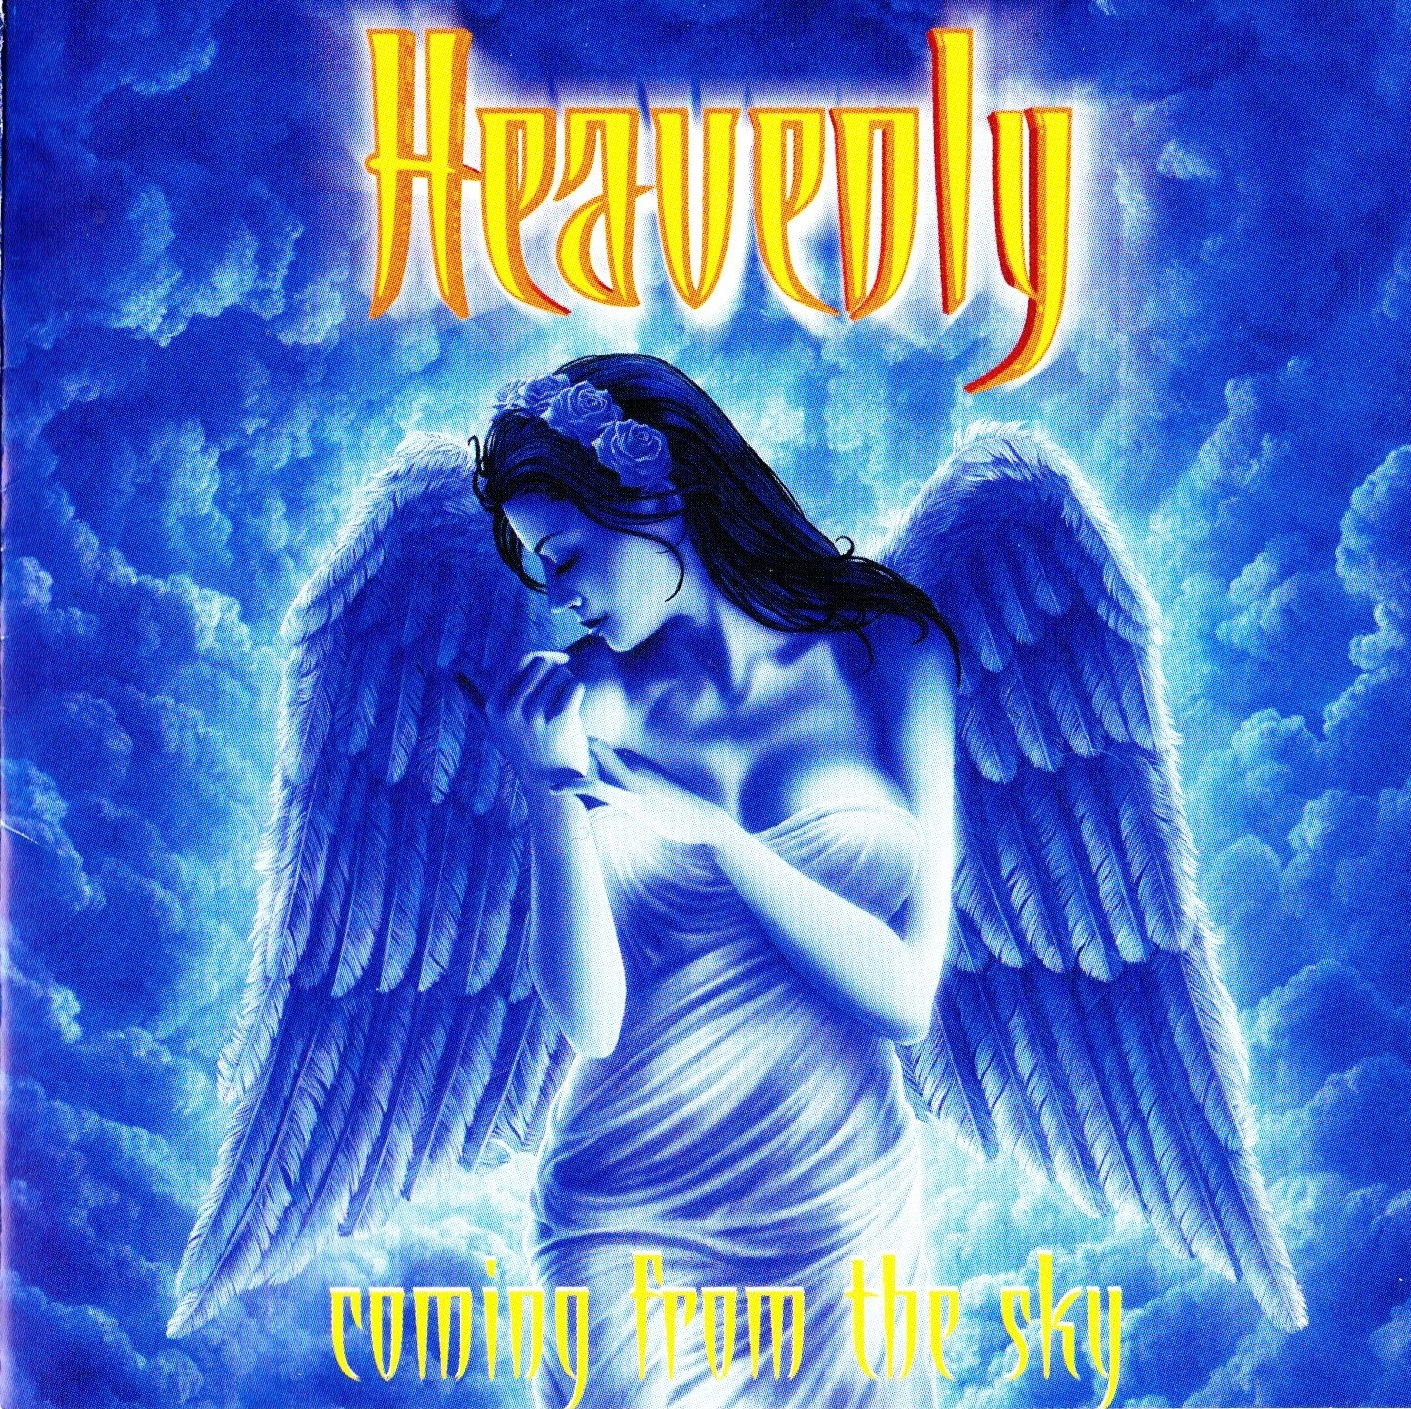 Heavenly — Coming From The Sky (2000)